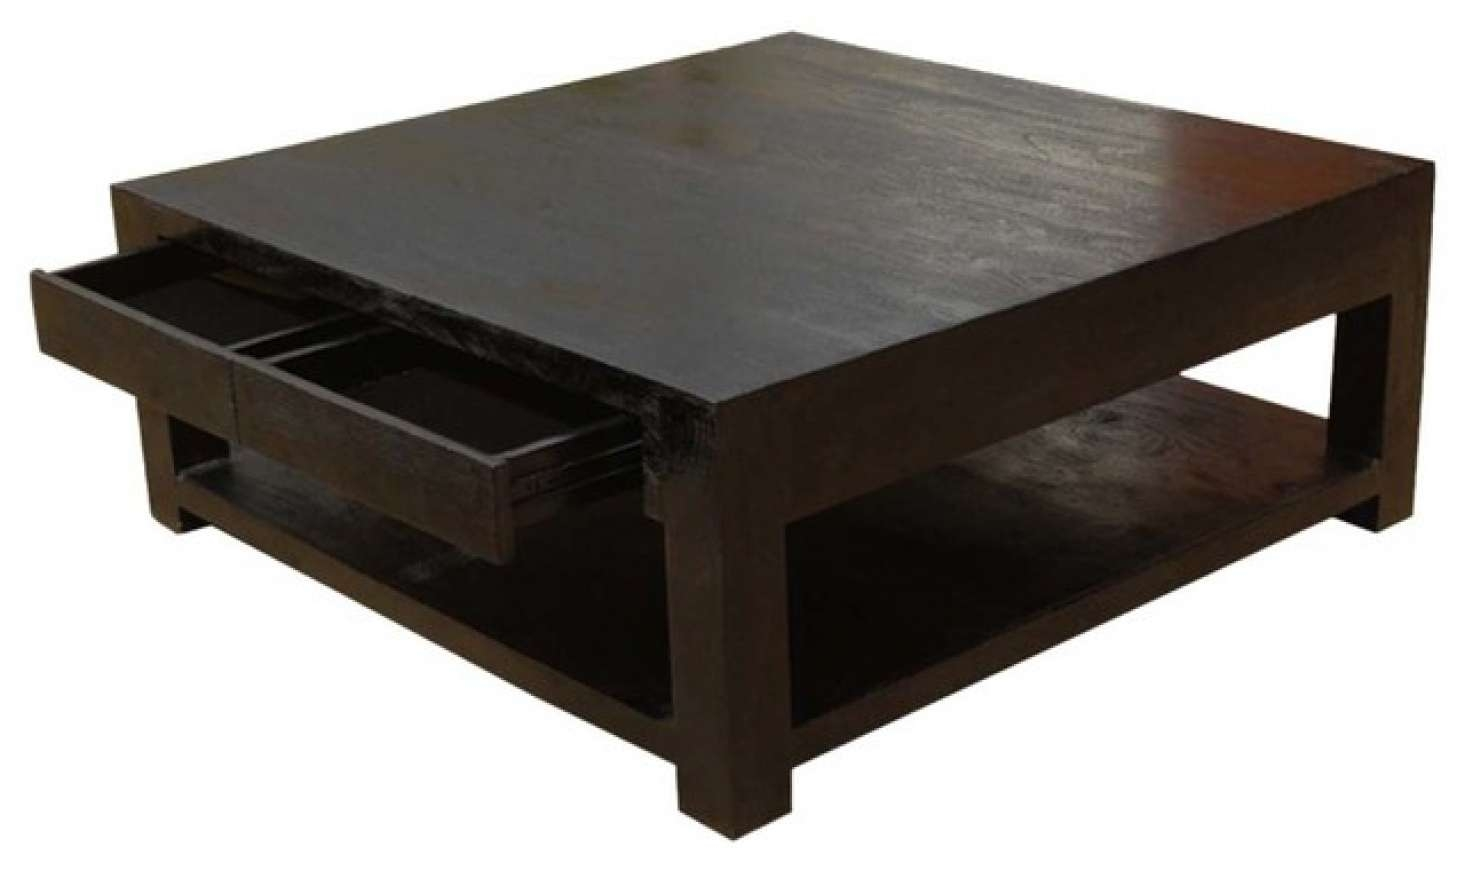 Perfect Oversized Square Coffee Tables 55 On Interior Designing For Trendy Square Coffee Tables (View 17 of 20)